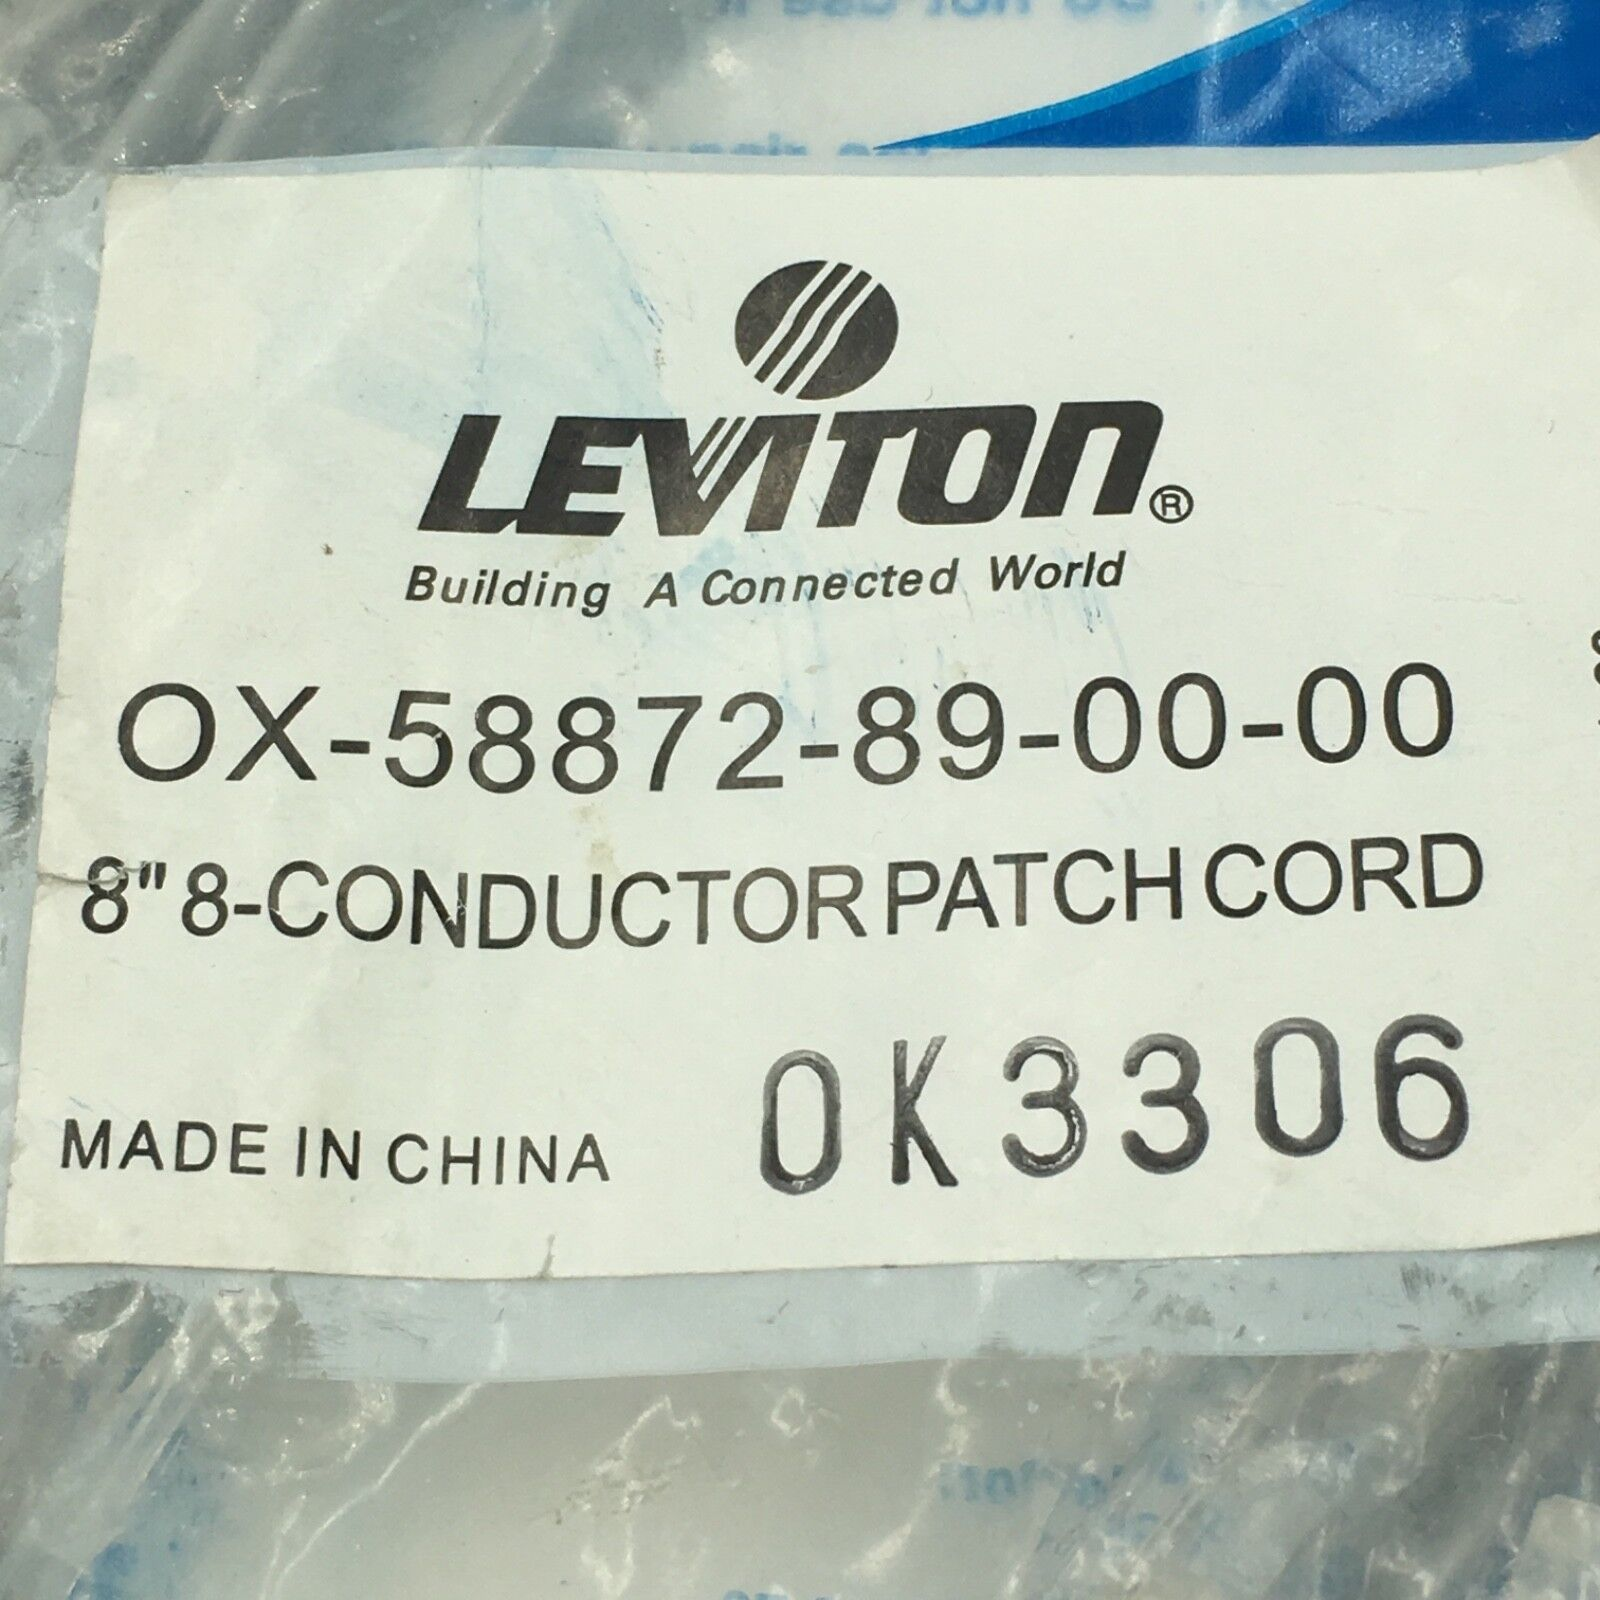 leviton 0x 58872 89 00 00 8 8 conductor patch cord ok3306 nip only 1 left